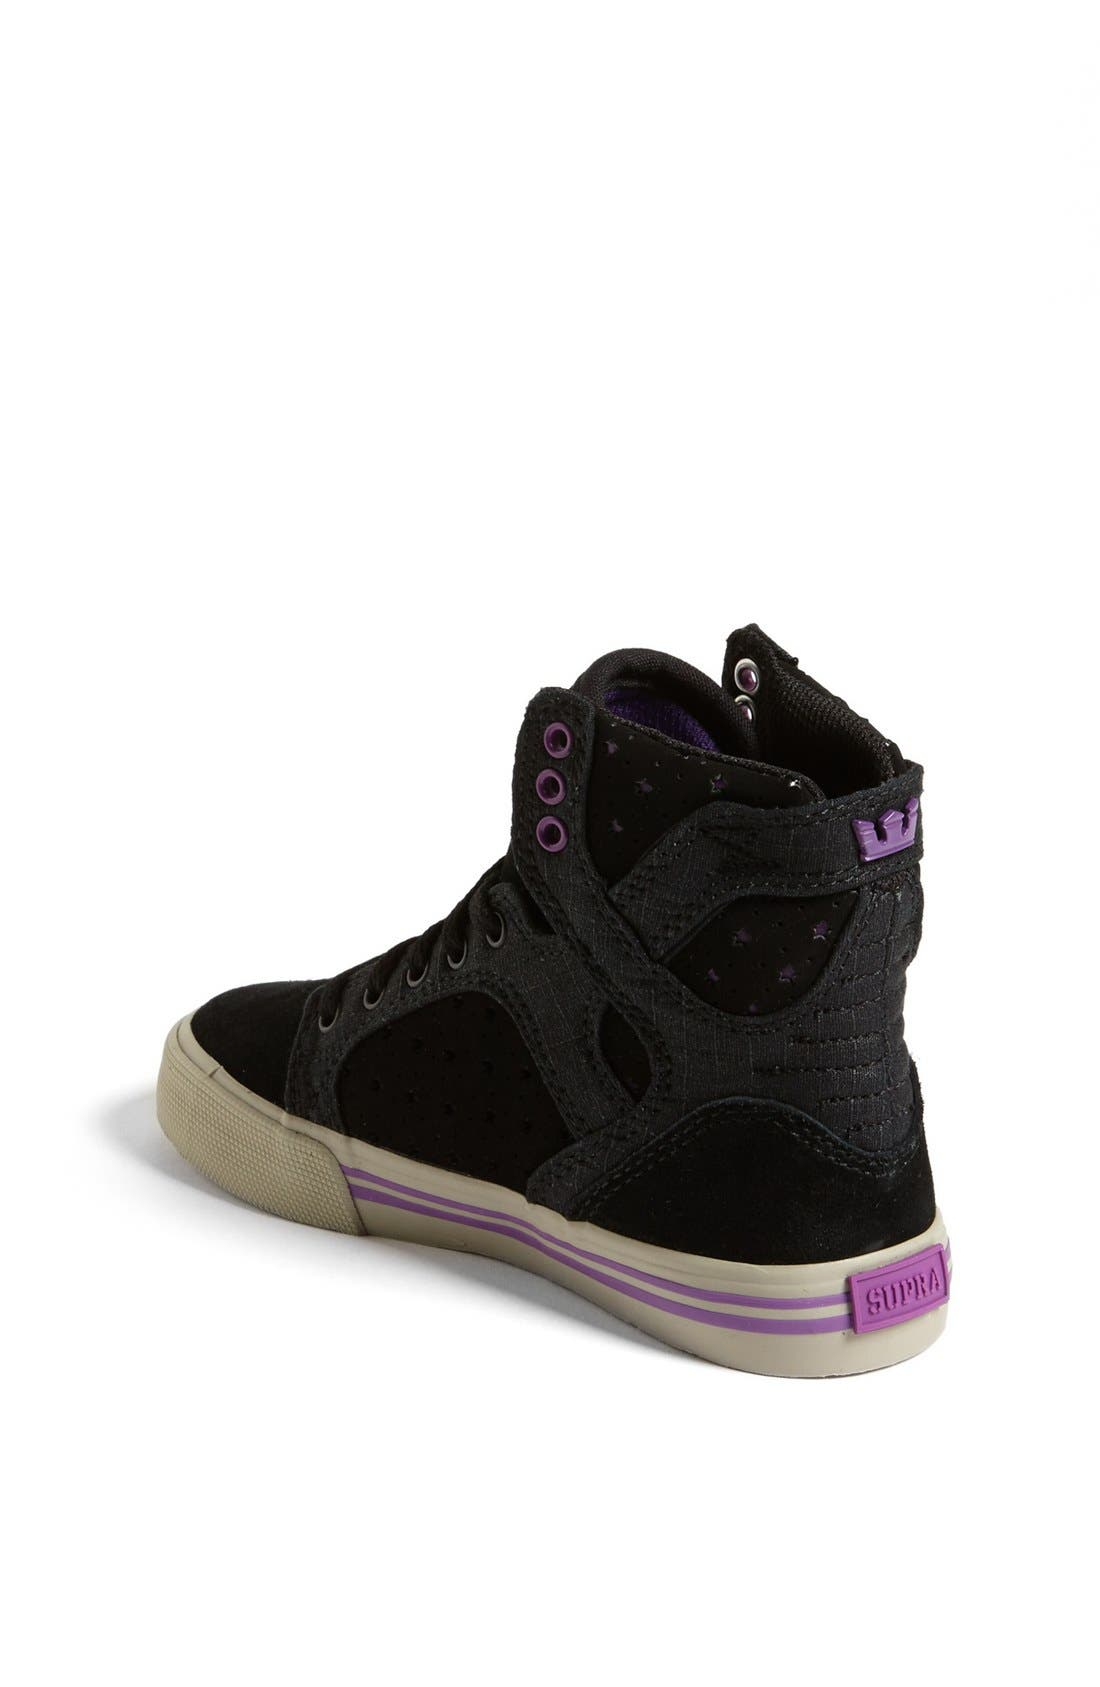 Alternate Image 2  - Supra 'Skytop' Sneaker (Toddler, Little Kid & Big Kid)